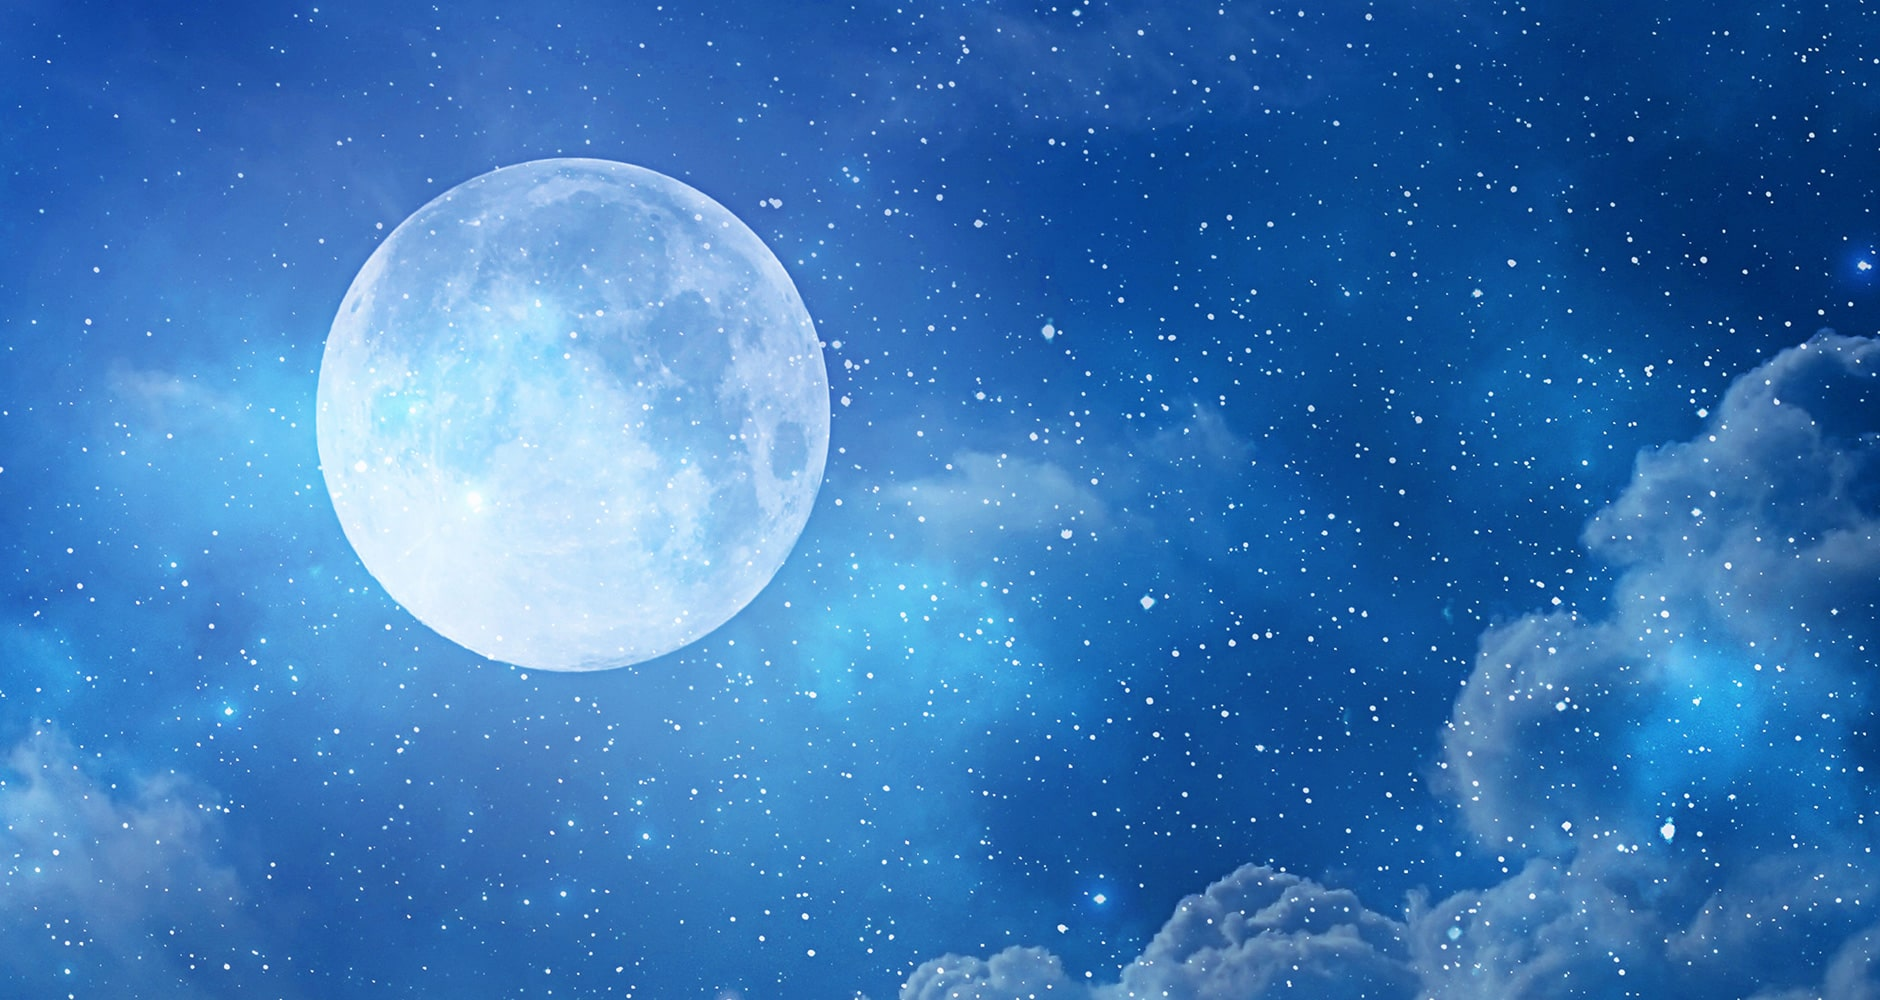 Blue Full Moon in Night Sky with Clouds